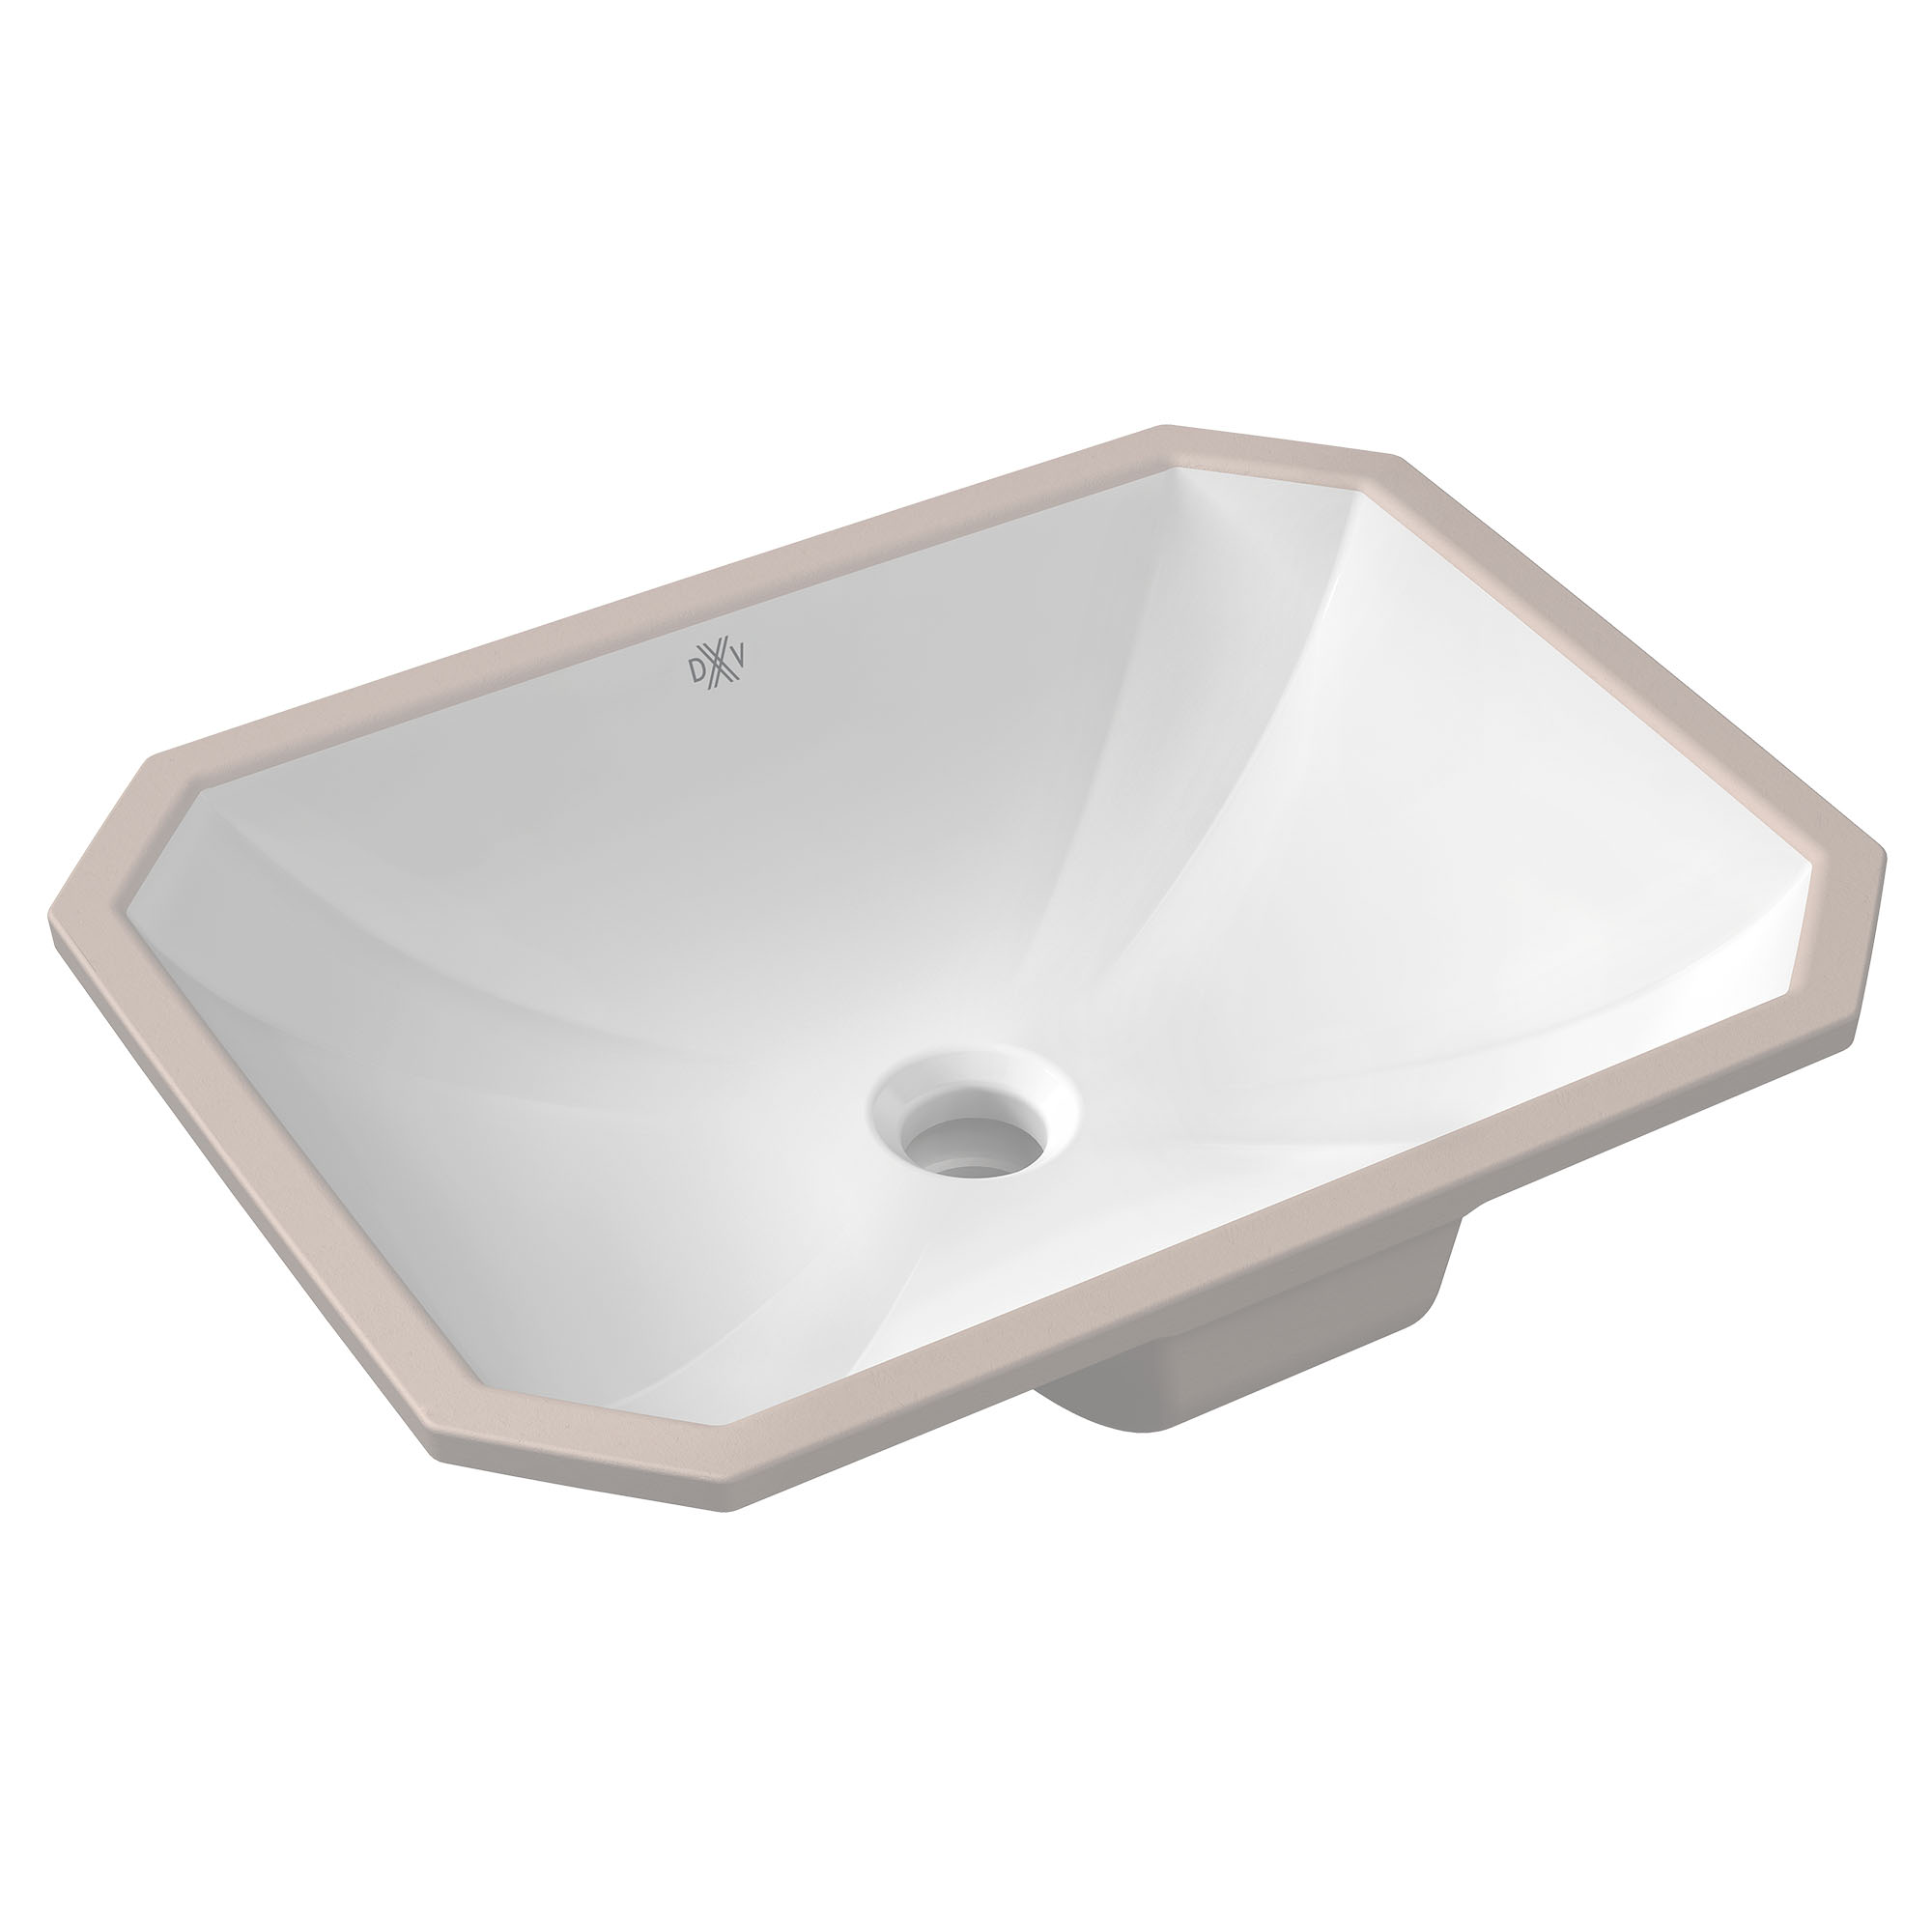 Belshire Undermount Sink